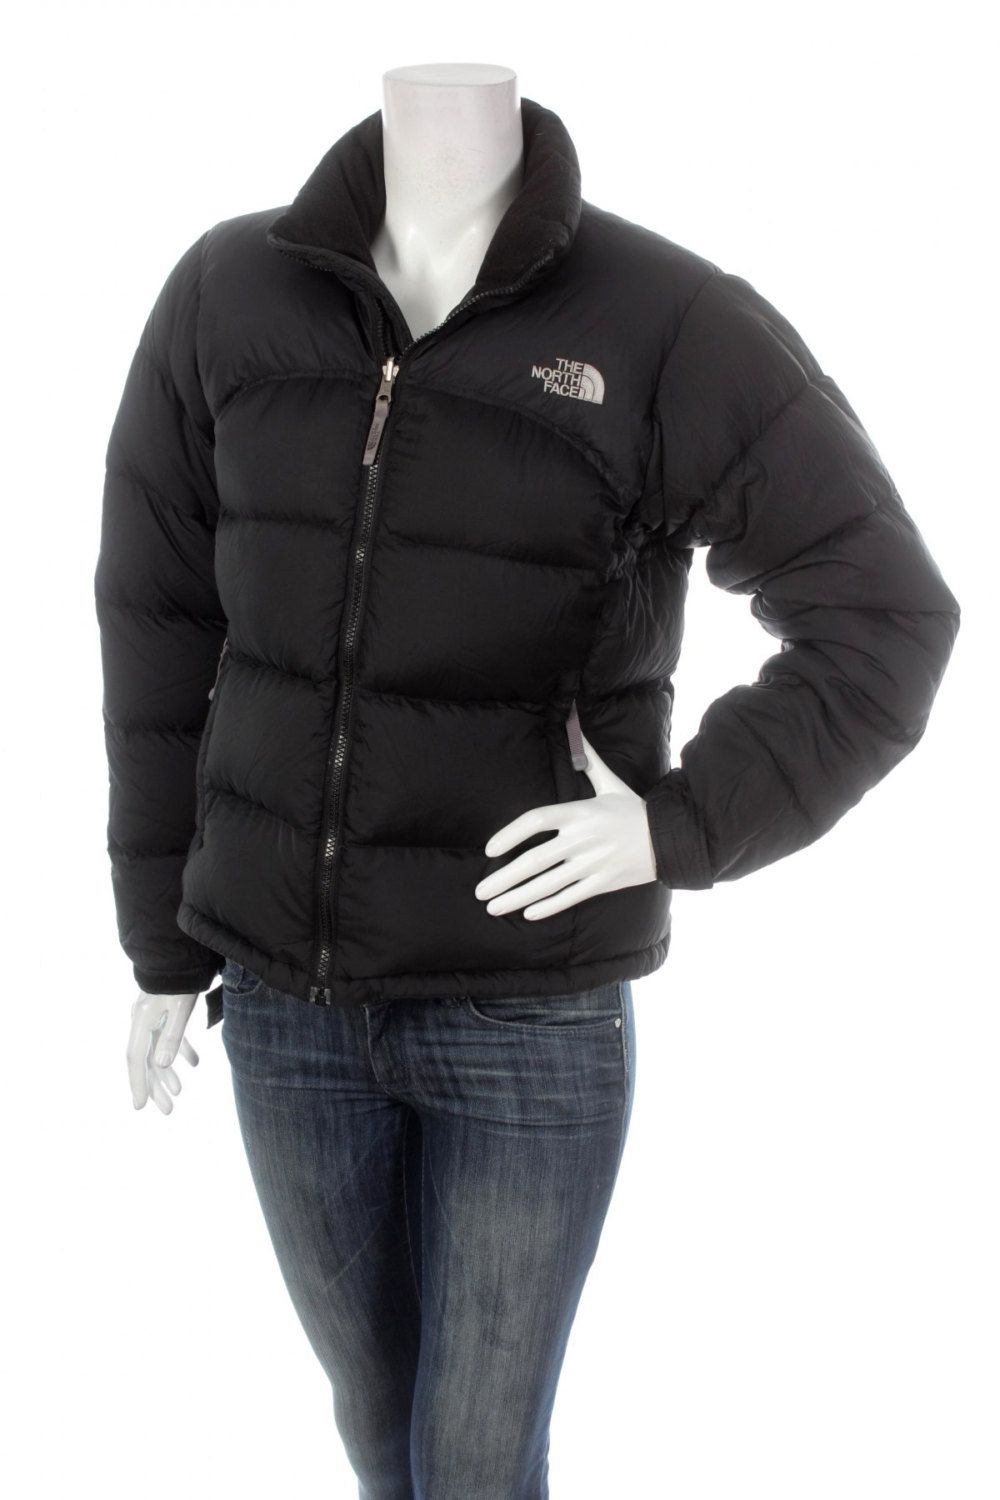 37b2620d7 The North Face Women's 700 Down Fill Nuptse Jacket Small Black by ...